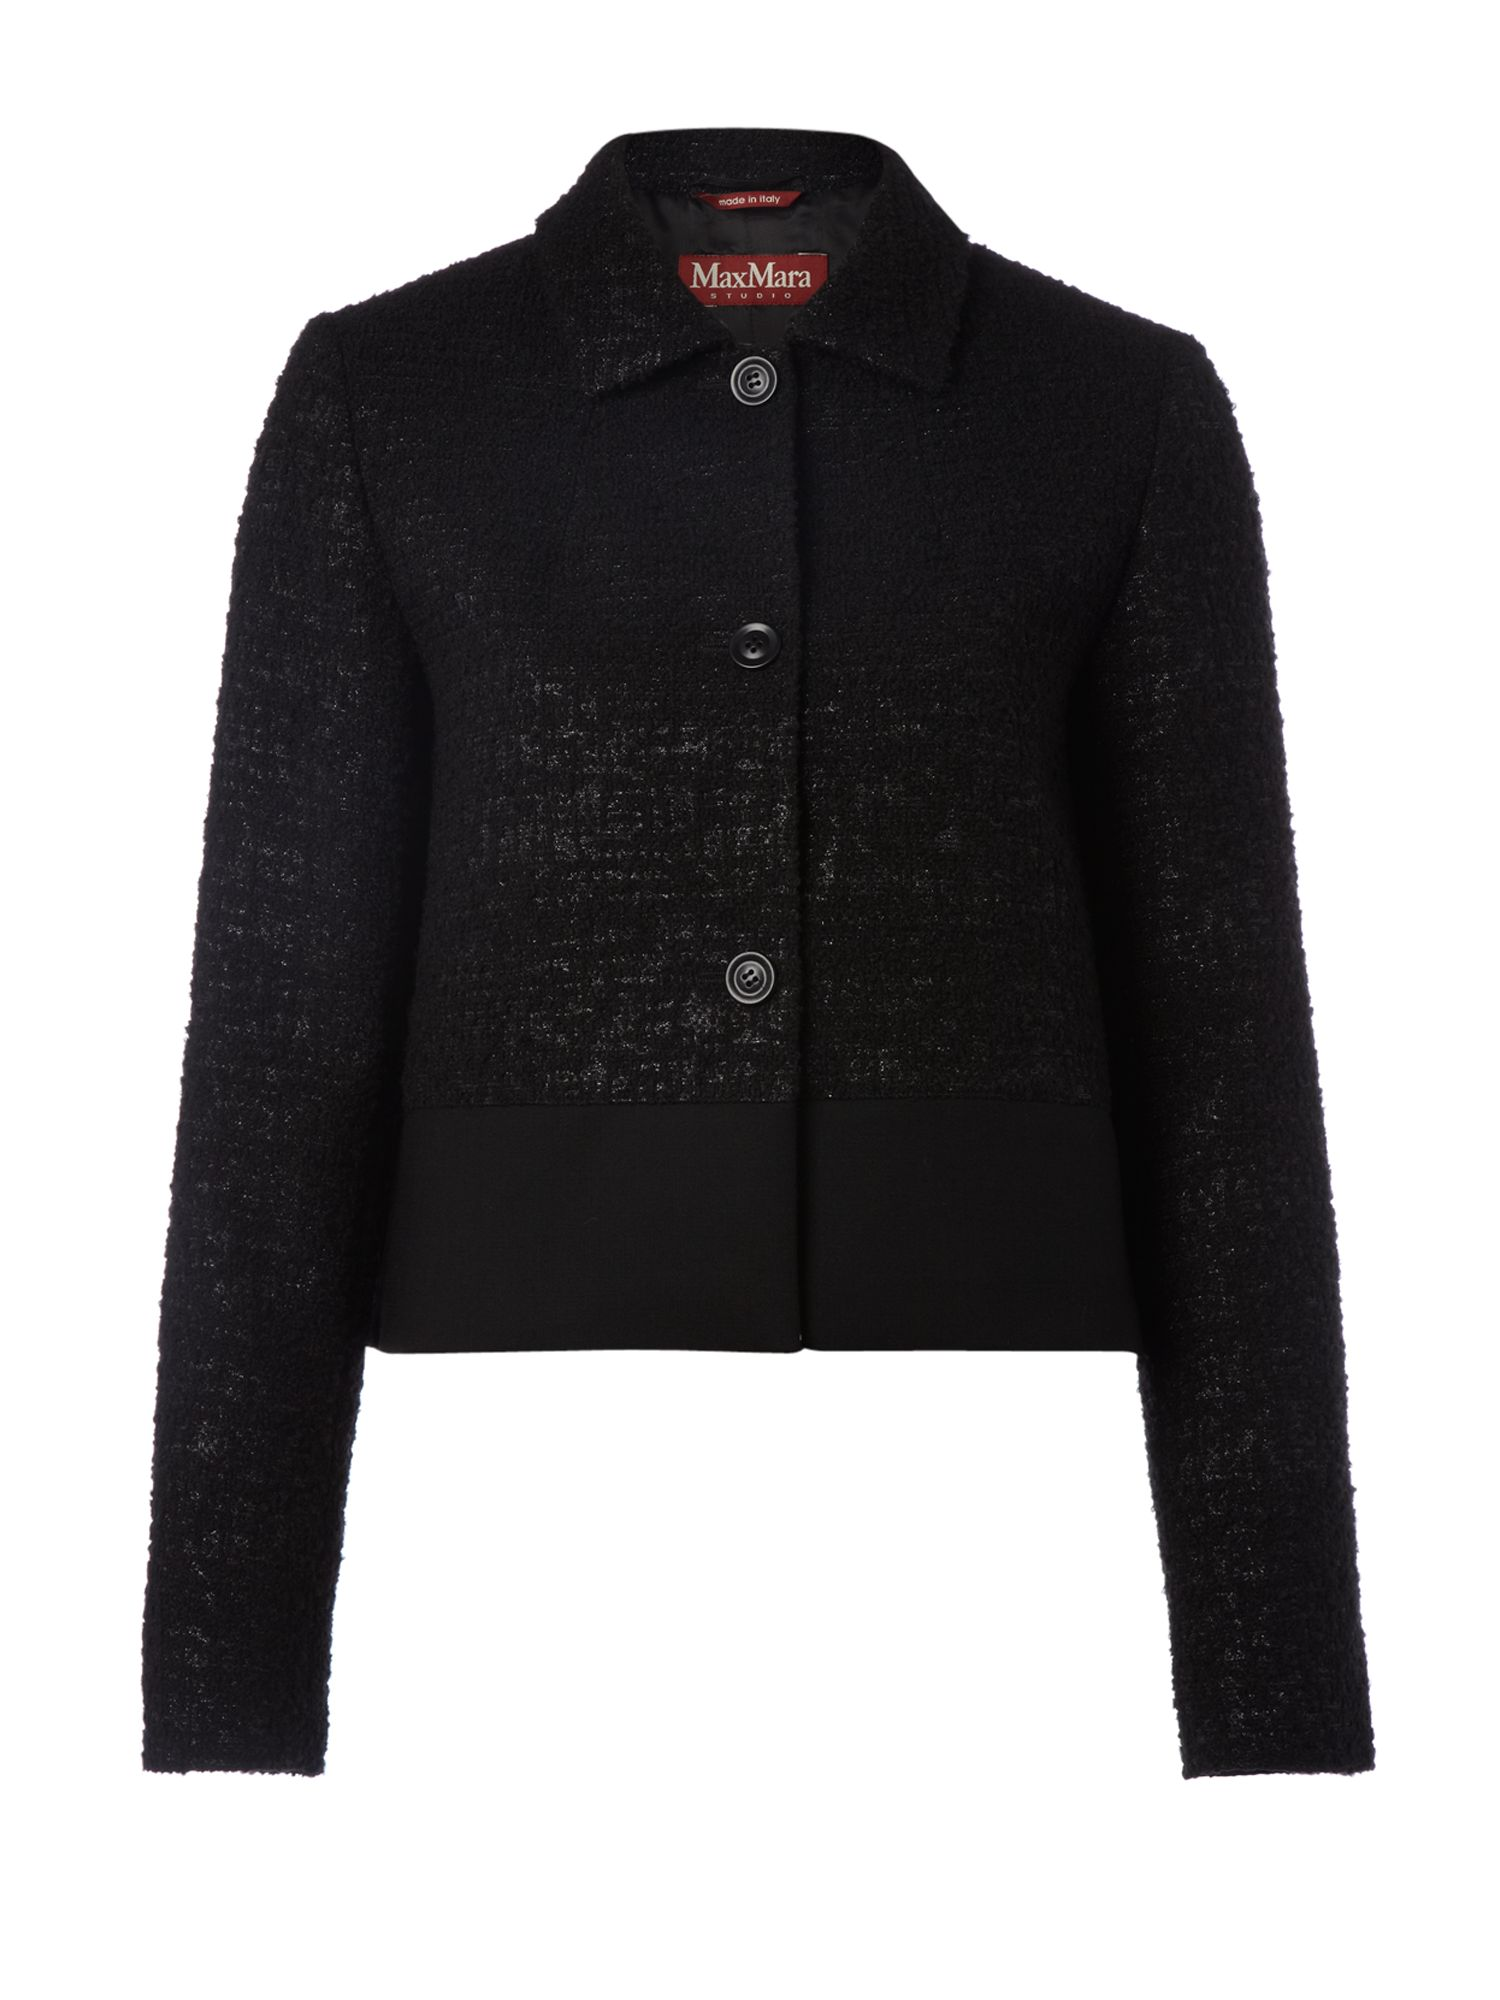 Women's MaxMara Studio Tempio boucle jacket, Black